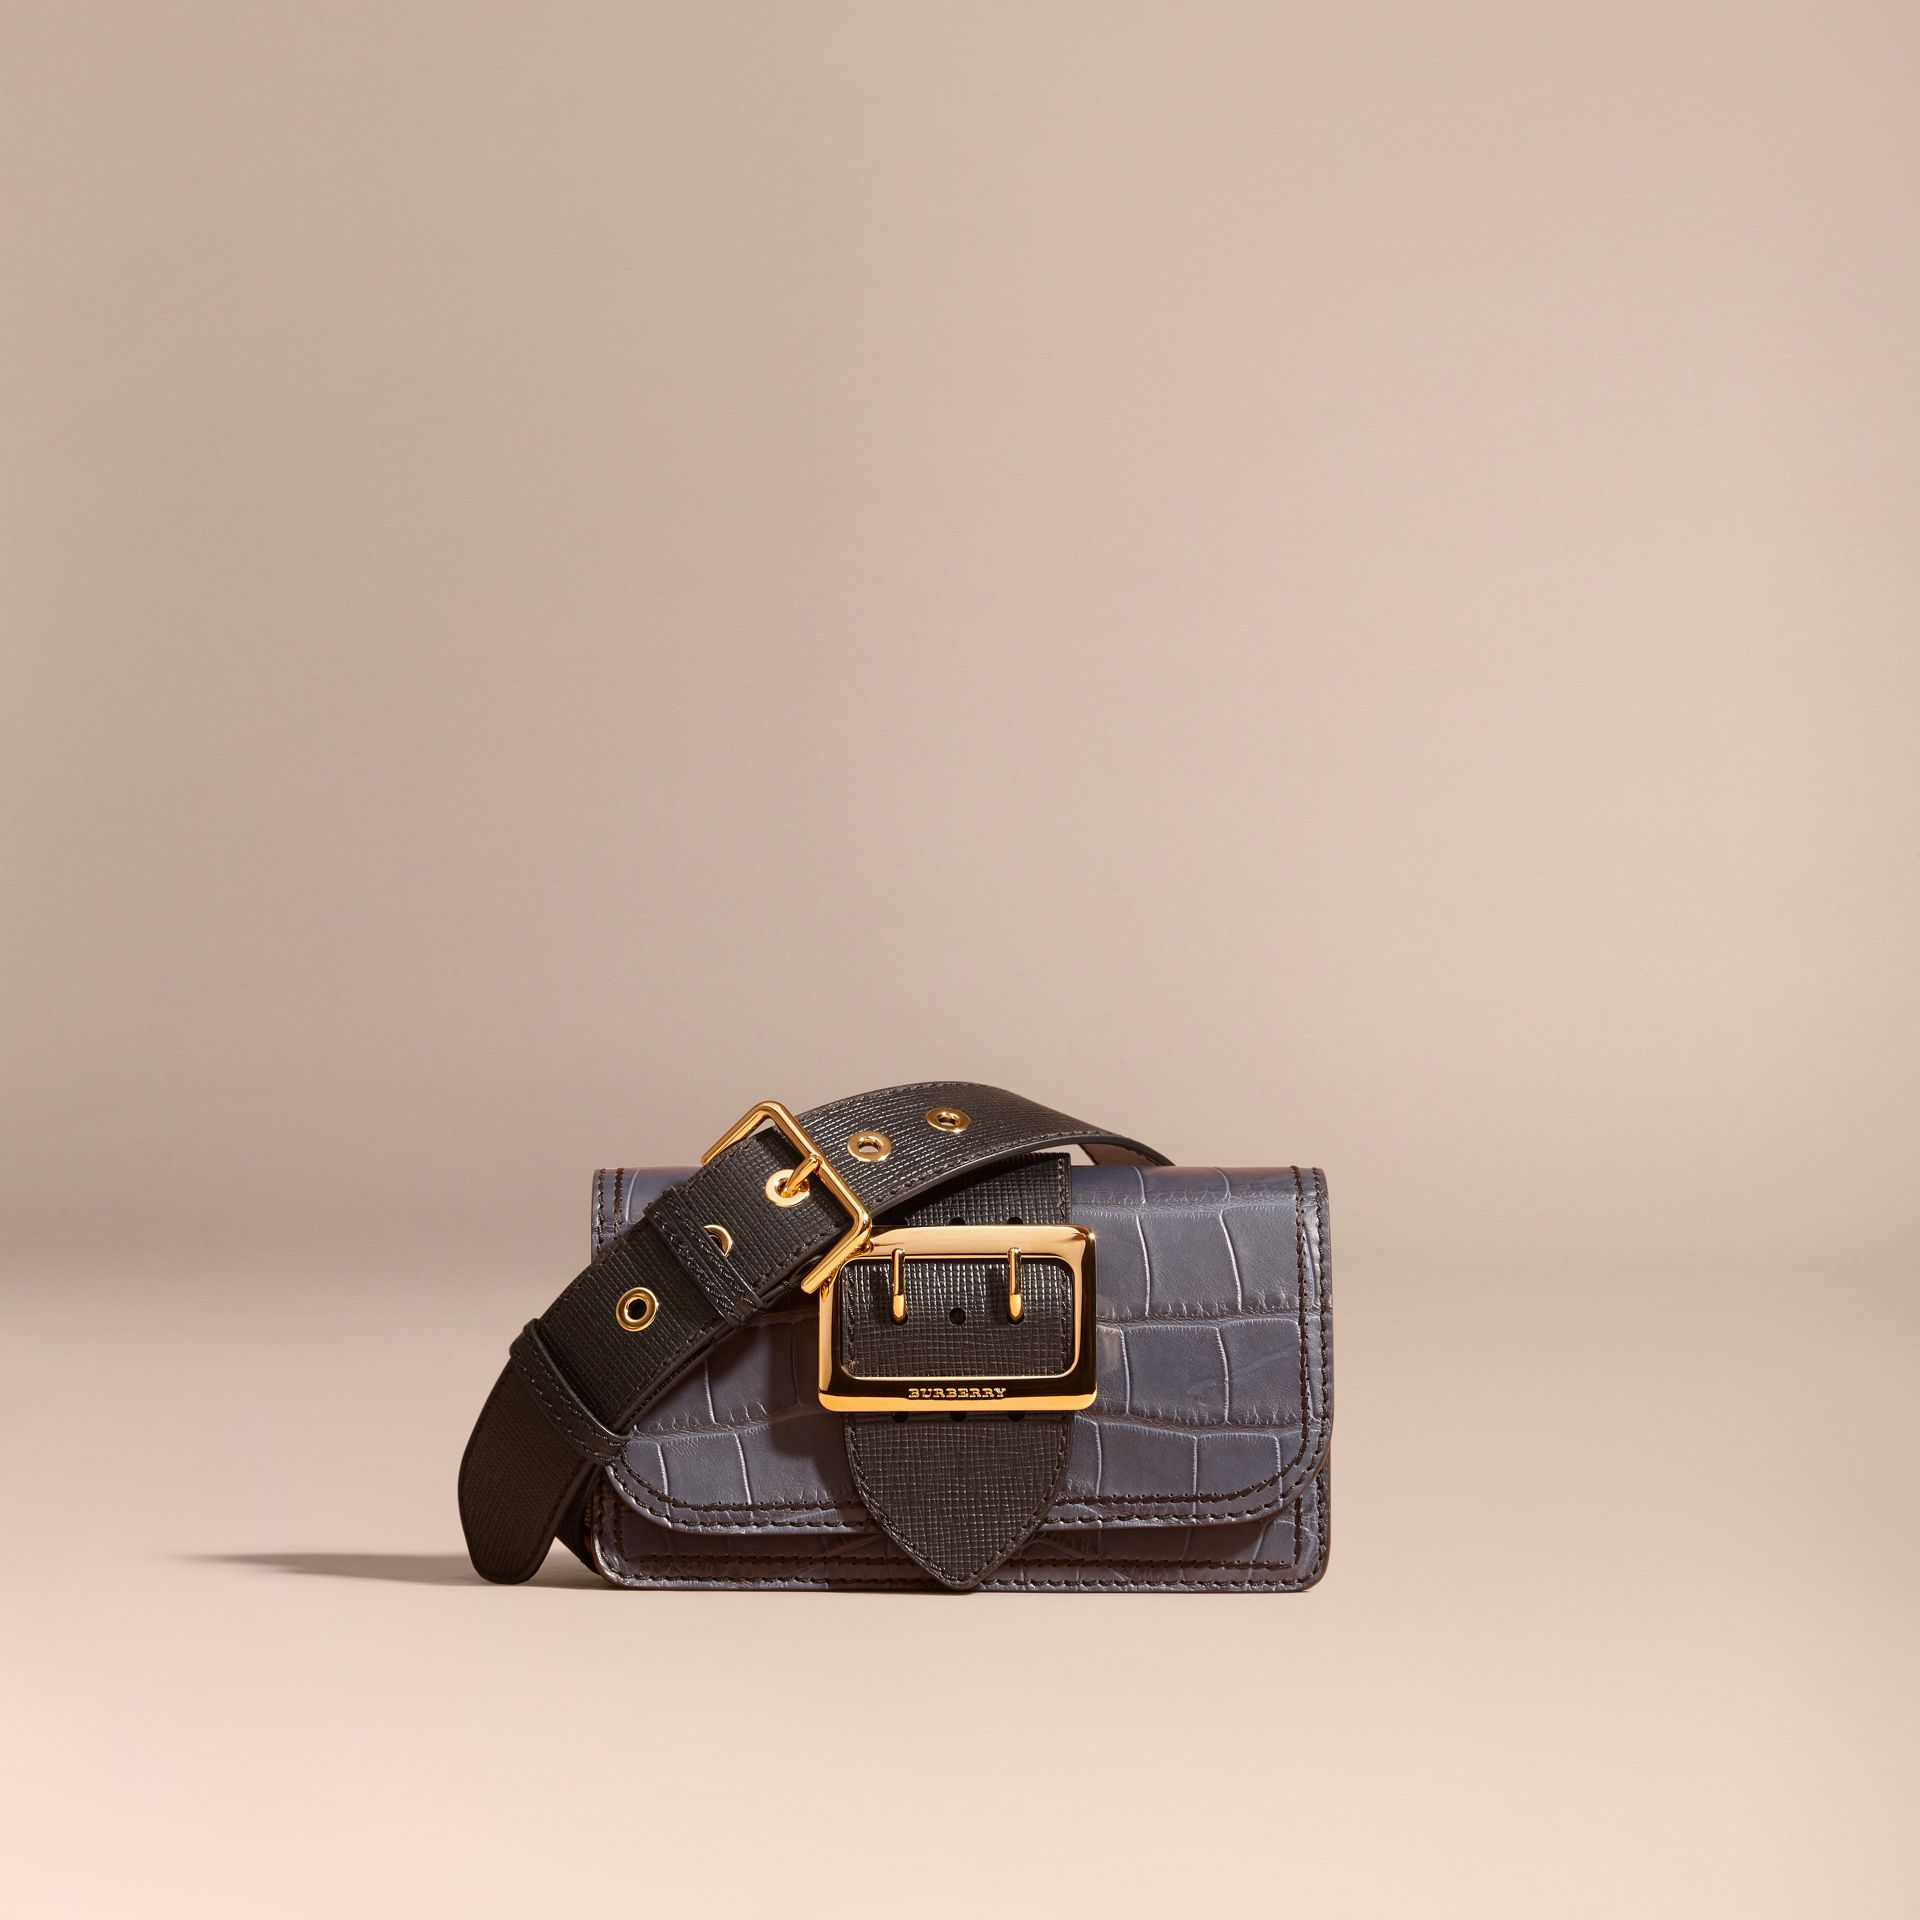 Petit sac The Buckle en alligator et cuir (Marine/noir) - Femme | Burberry - photo de la galerie 9